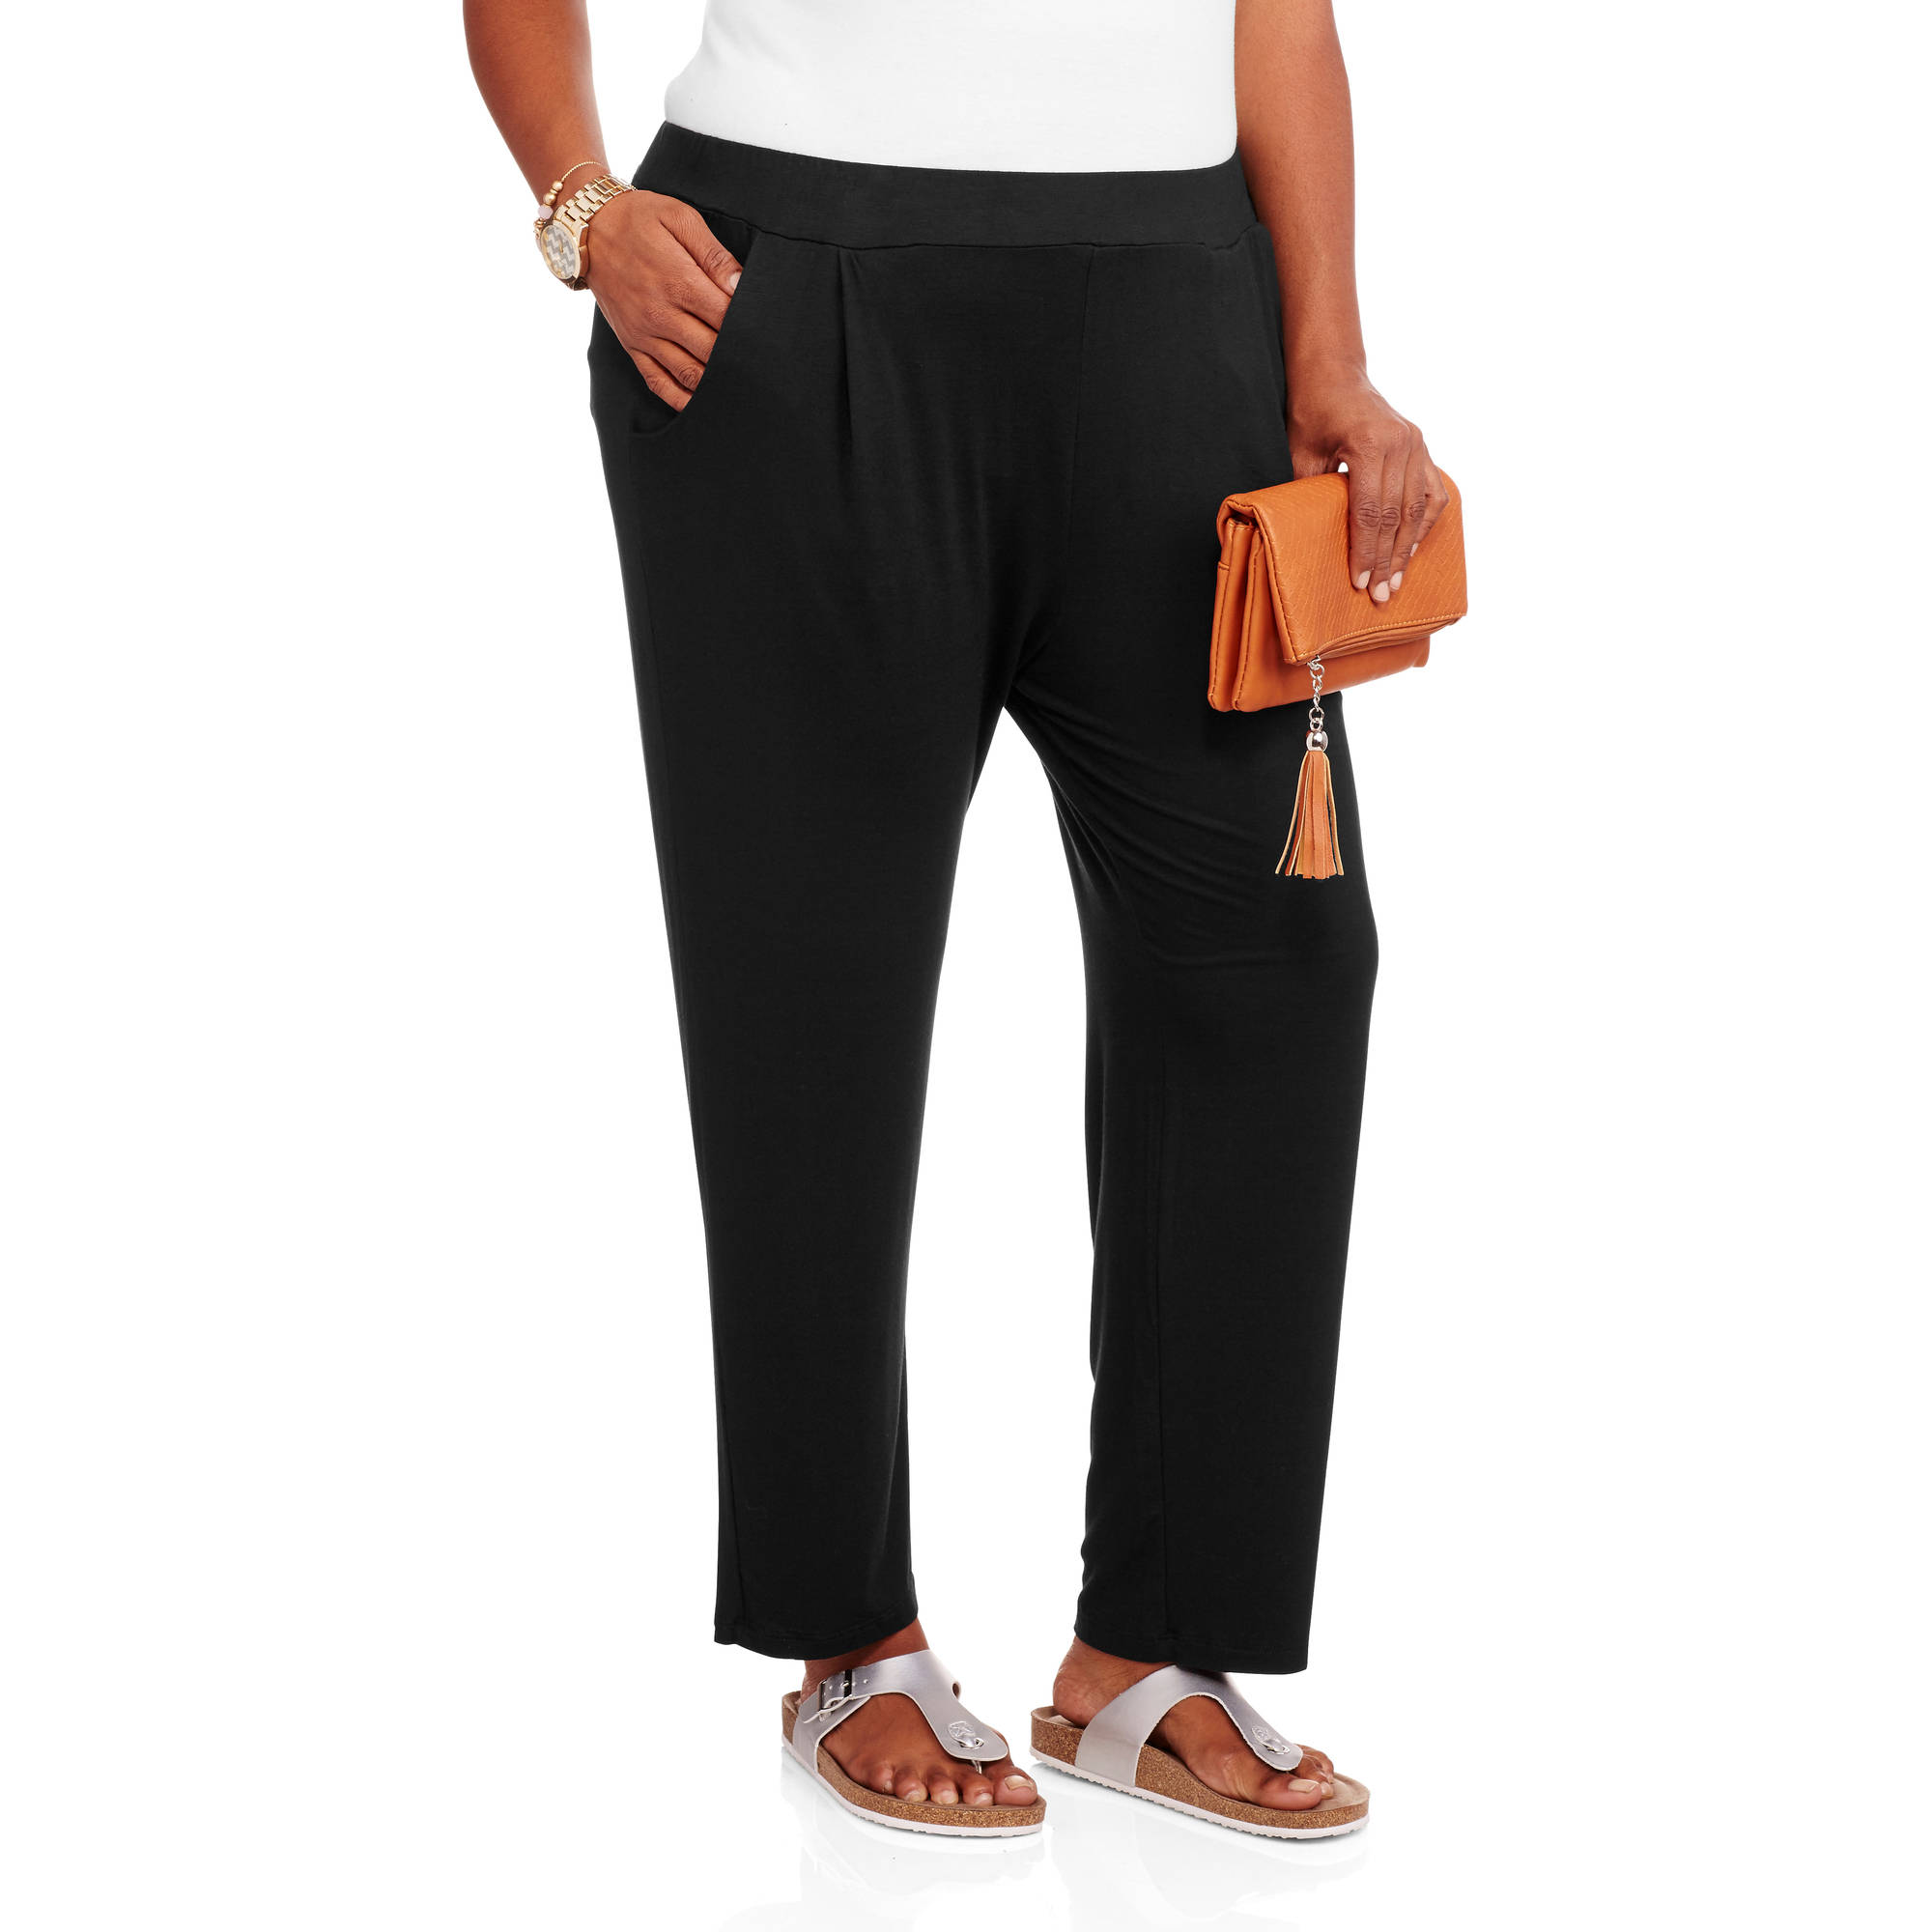 24/7 Comfort Apparel Women's Plus Size 2-Pocket Straight Leg Pant